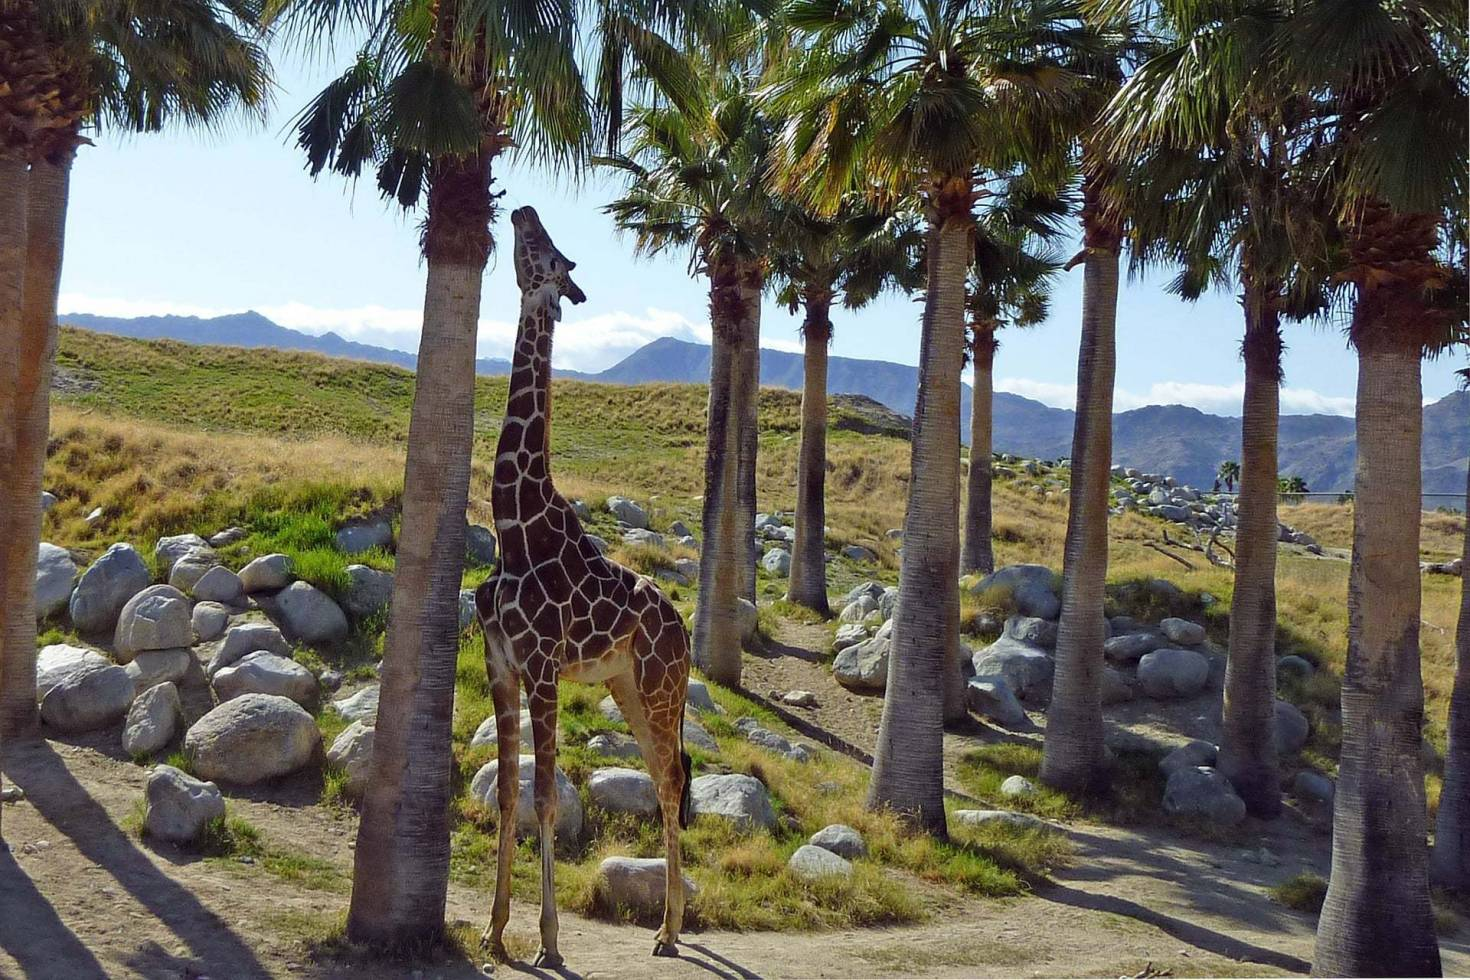 The Living Desert Zoo and Gardens State Park